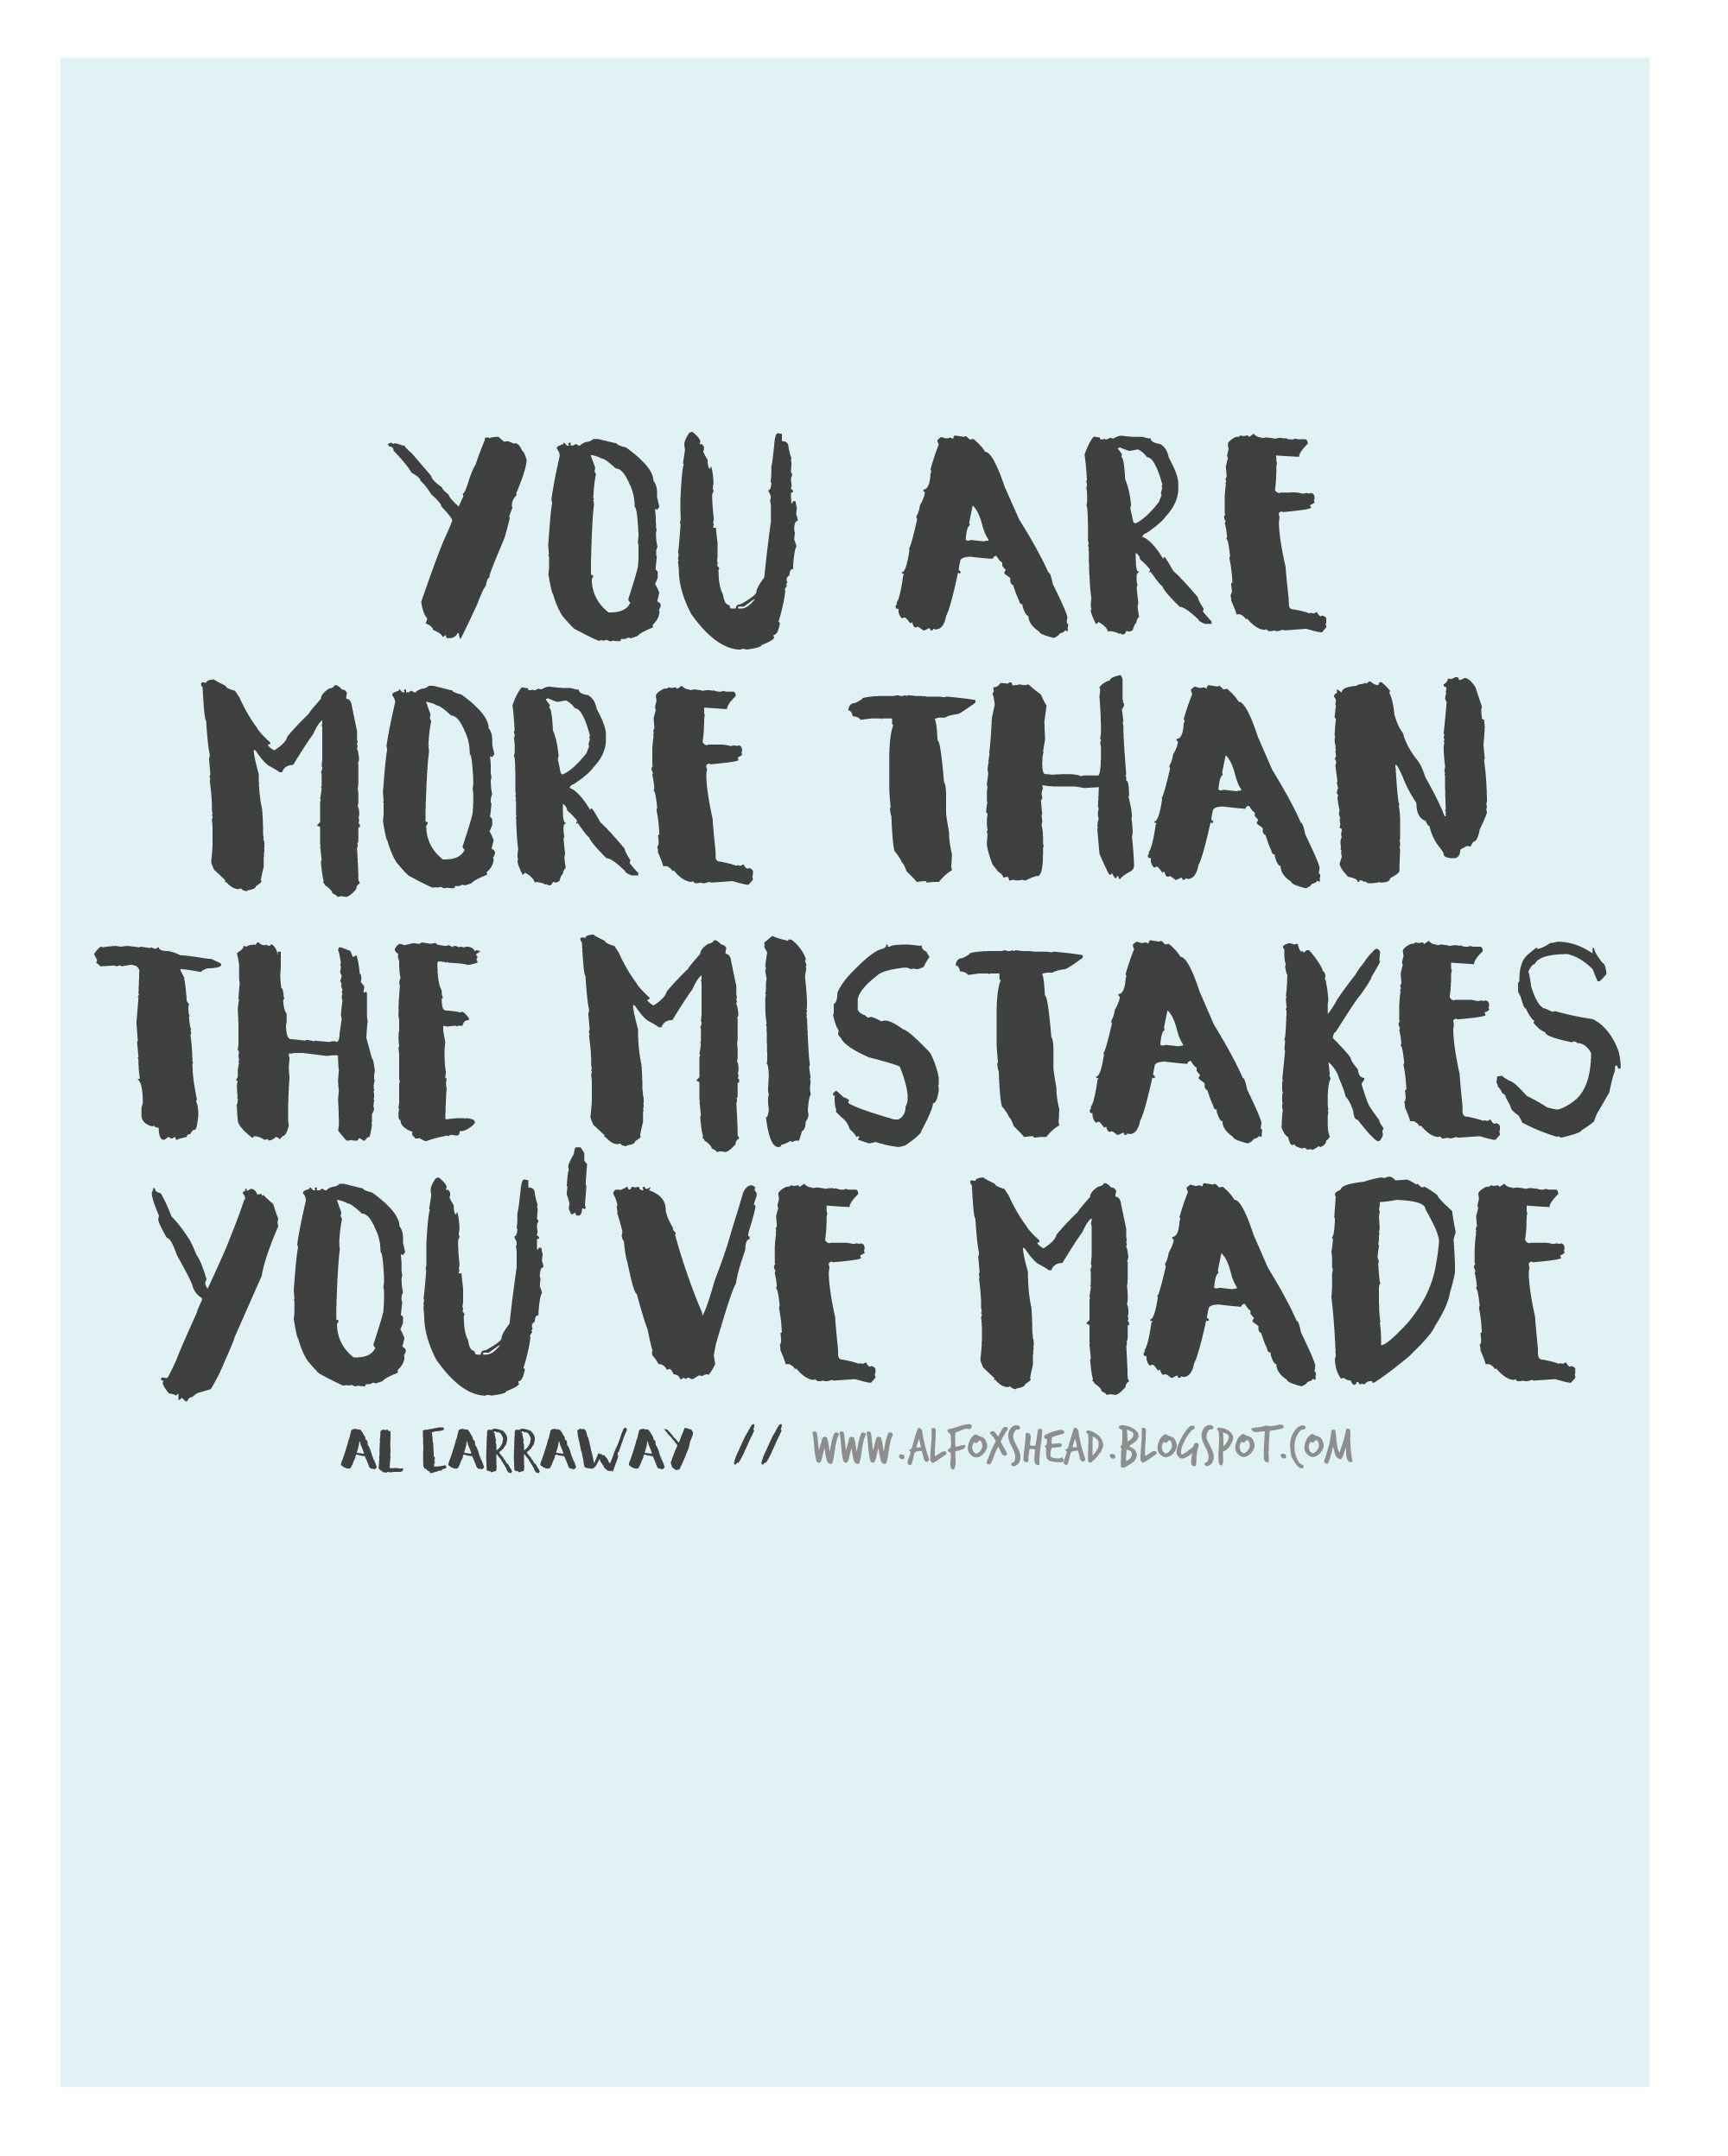 Inspirational Book Of Mormon Quotes: You Are More Than The Mistakes You've Made! // Al Carraway